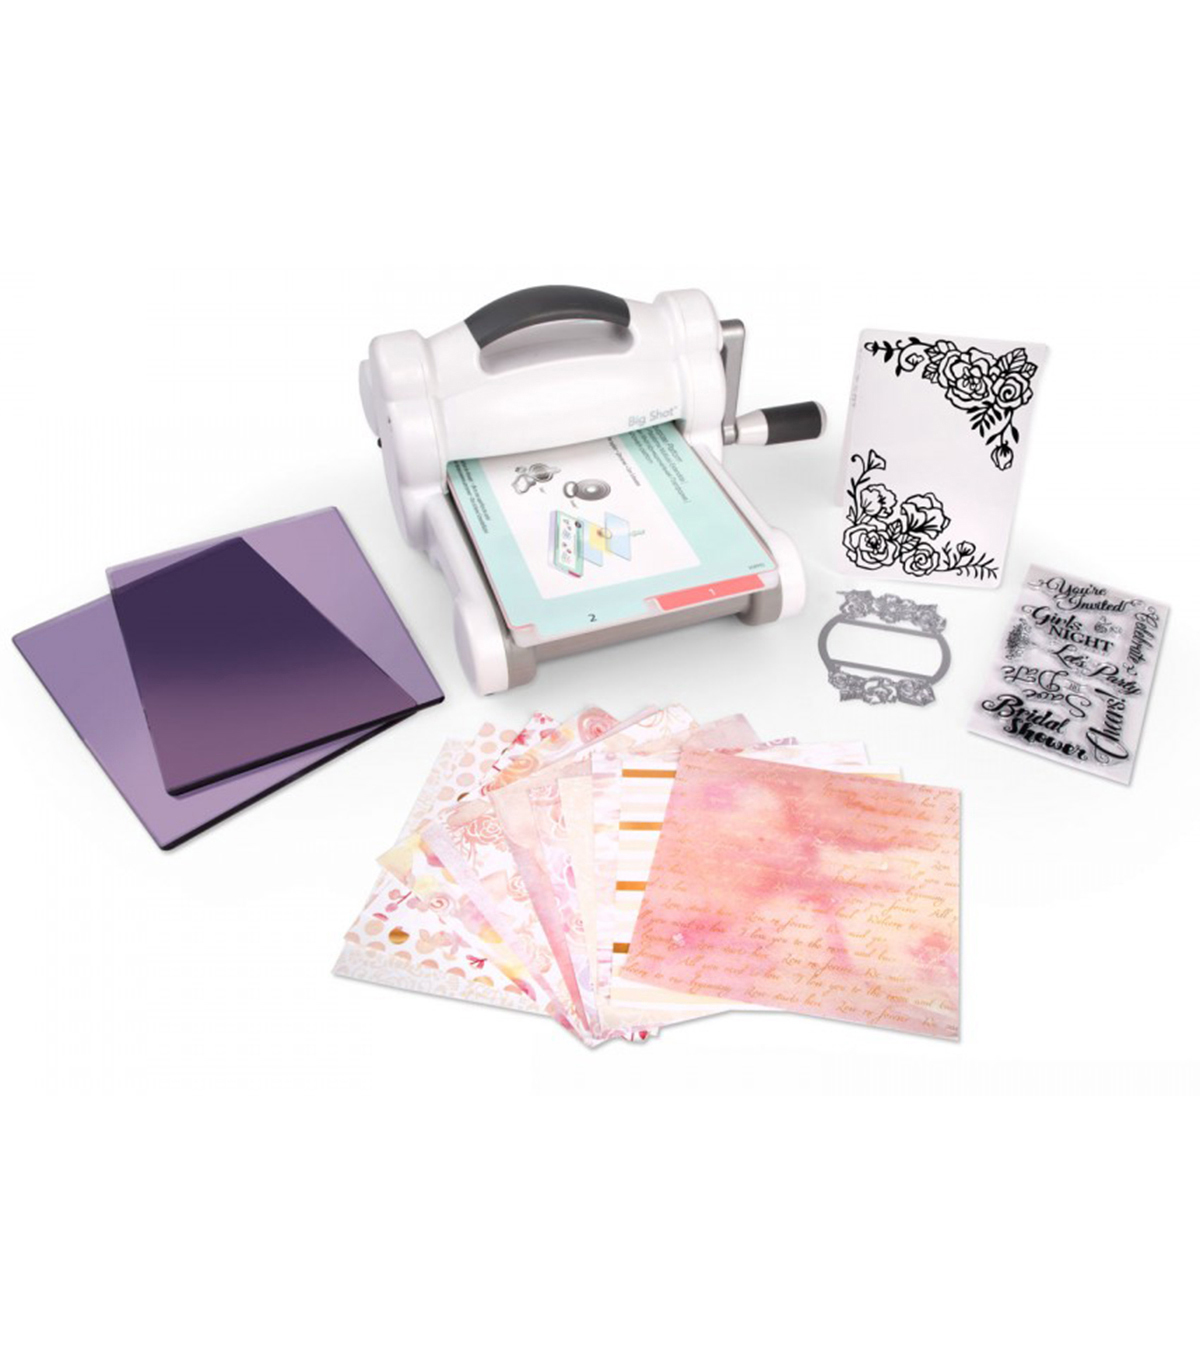 Sizzix™ David Tutera Big Shot Starter Kit-White & Gray